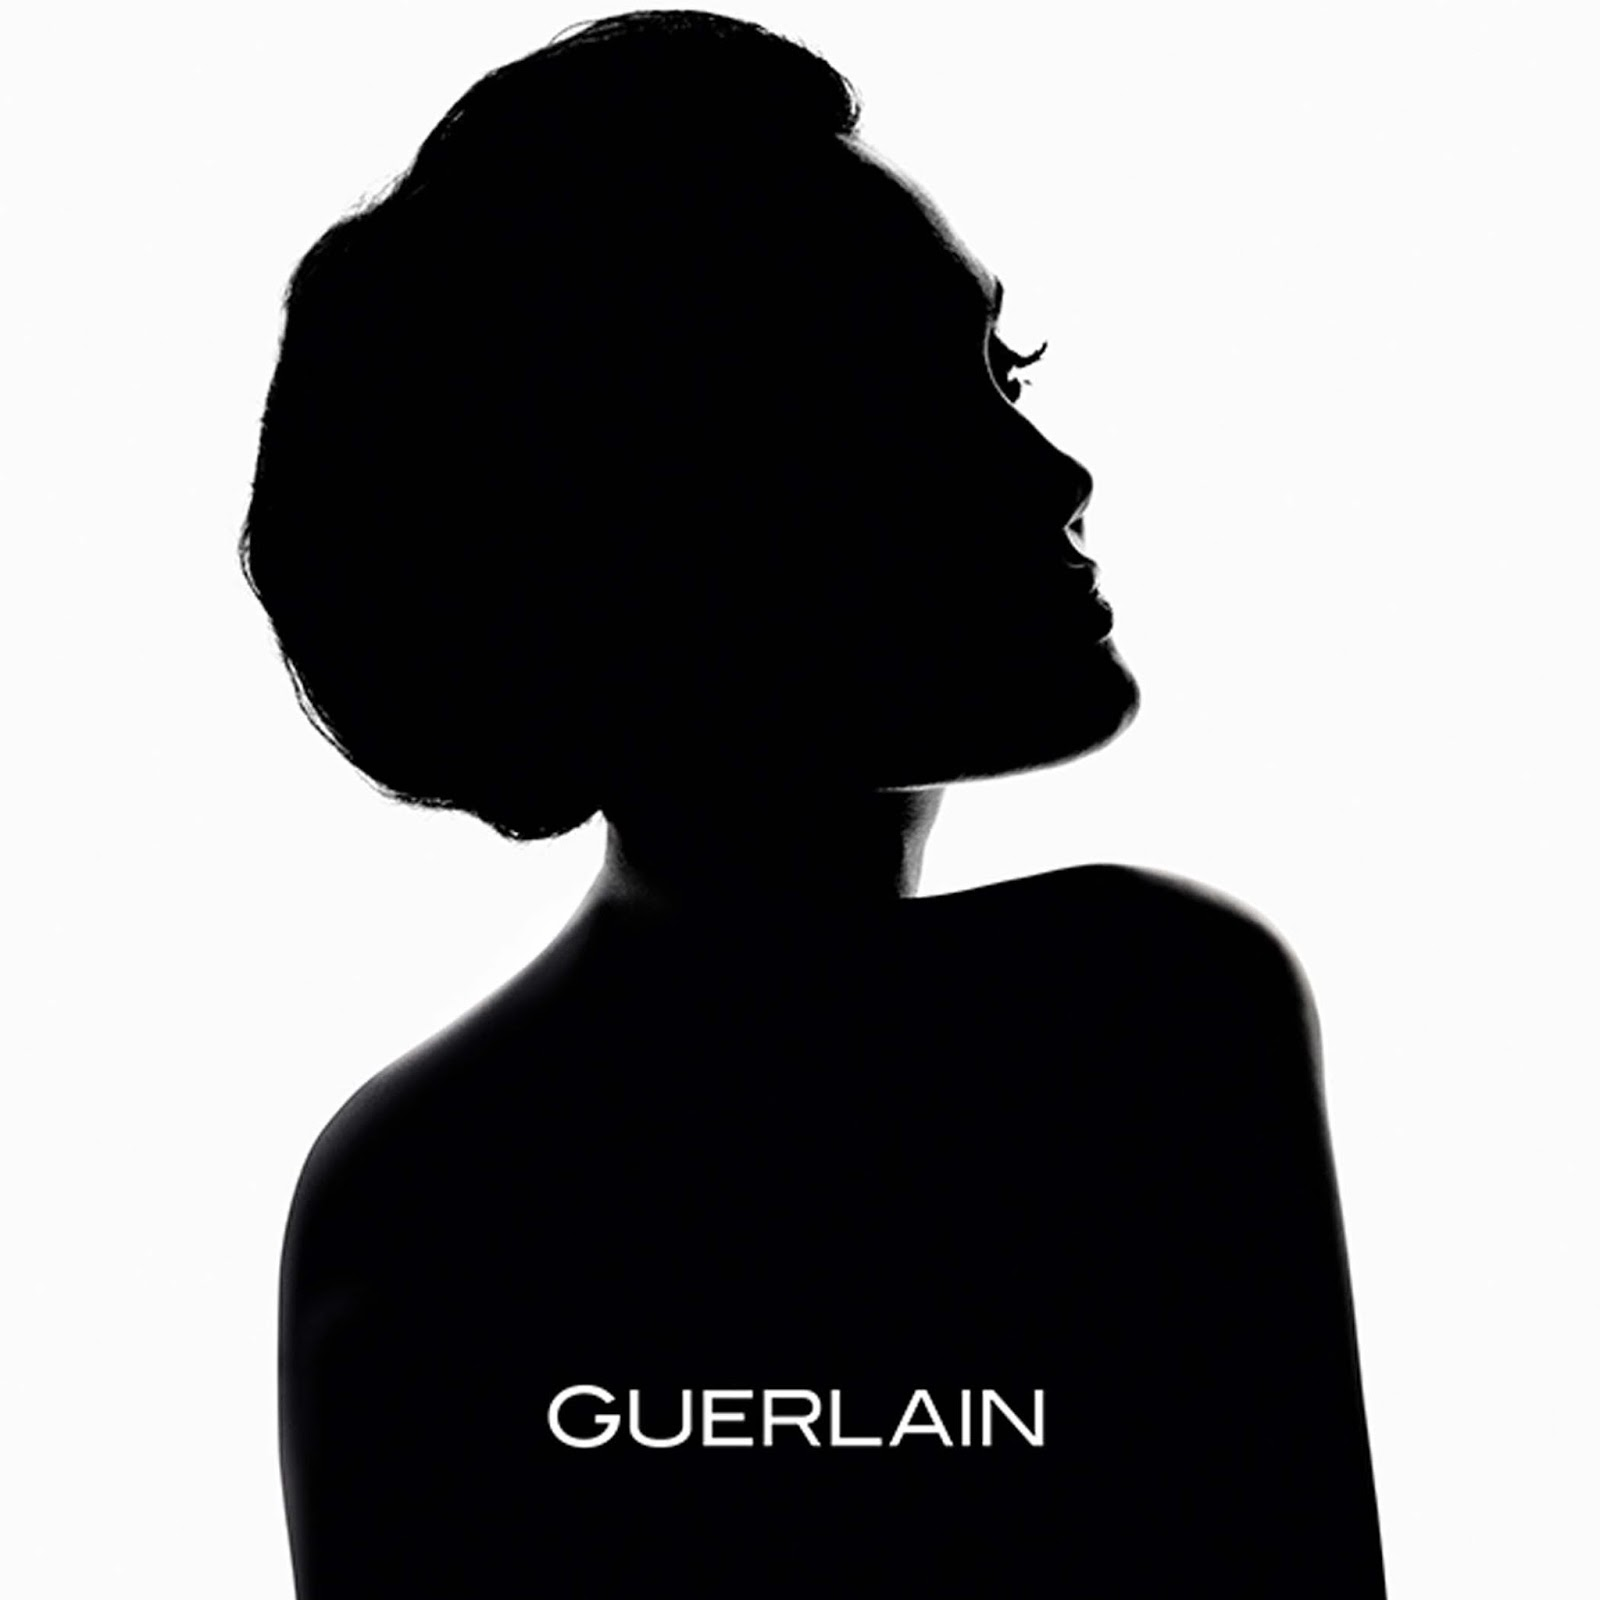 Eniwhere Fashion - News on Fashion - Guerlain